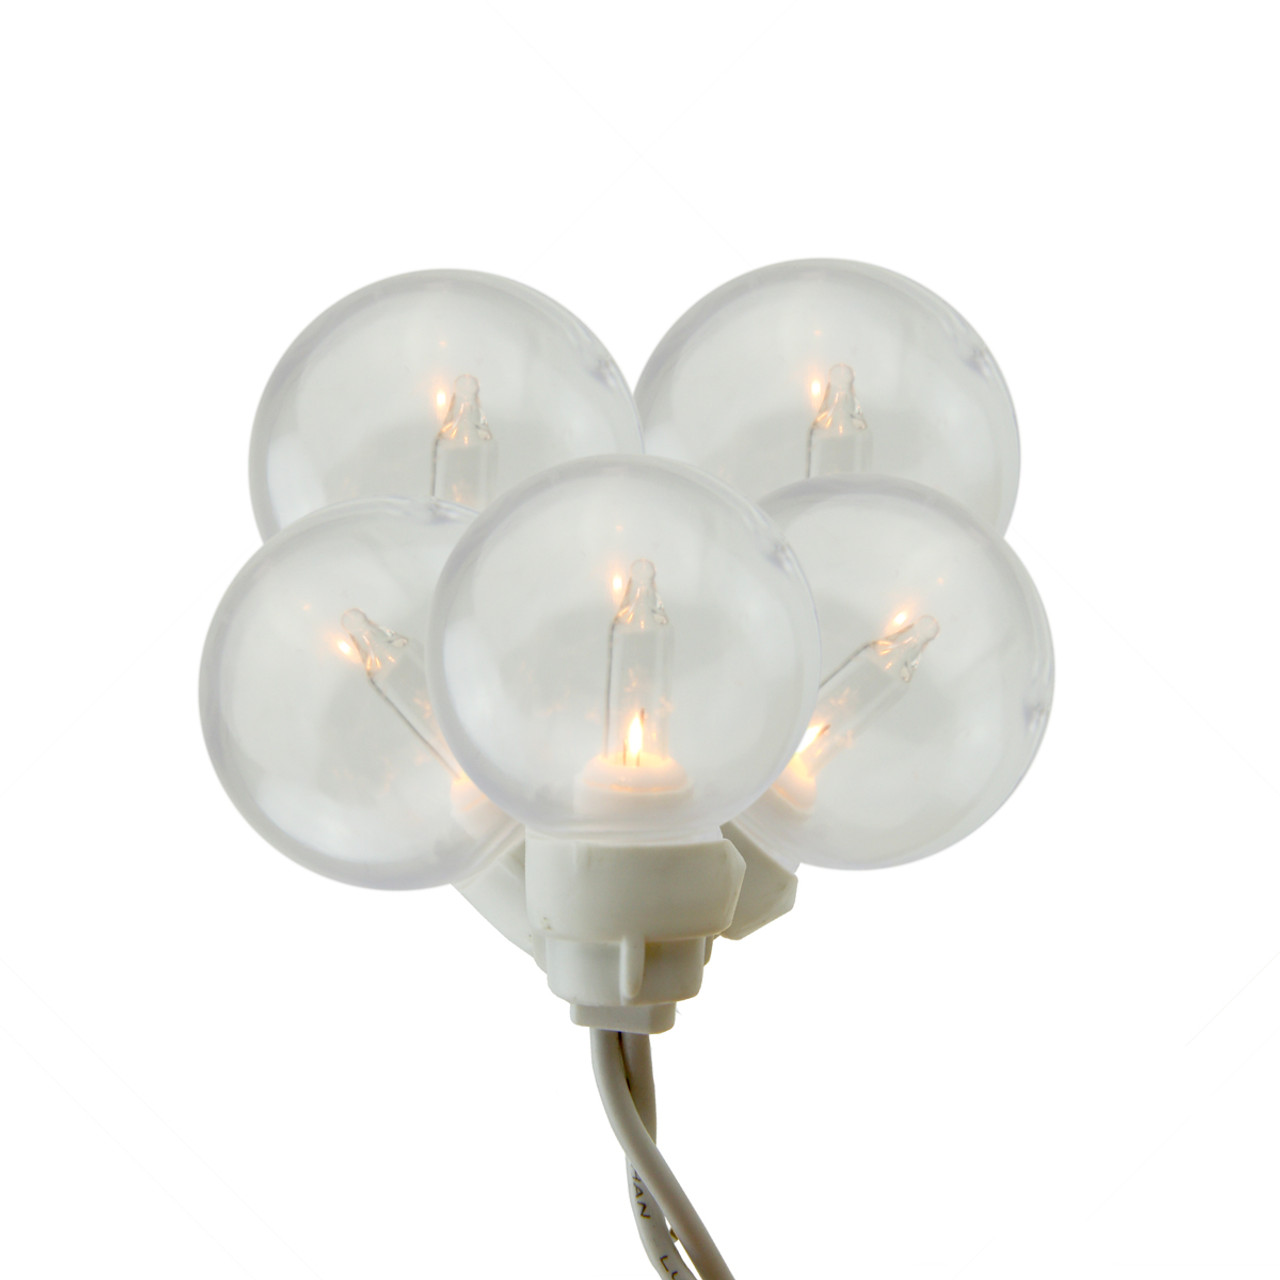 Set of 100 Clear G30 Globe Icicle Christmas Lights - White Wire ...